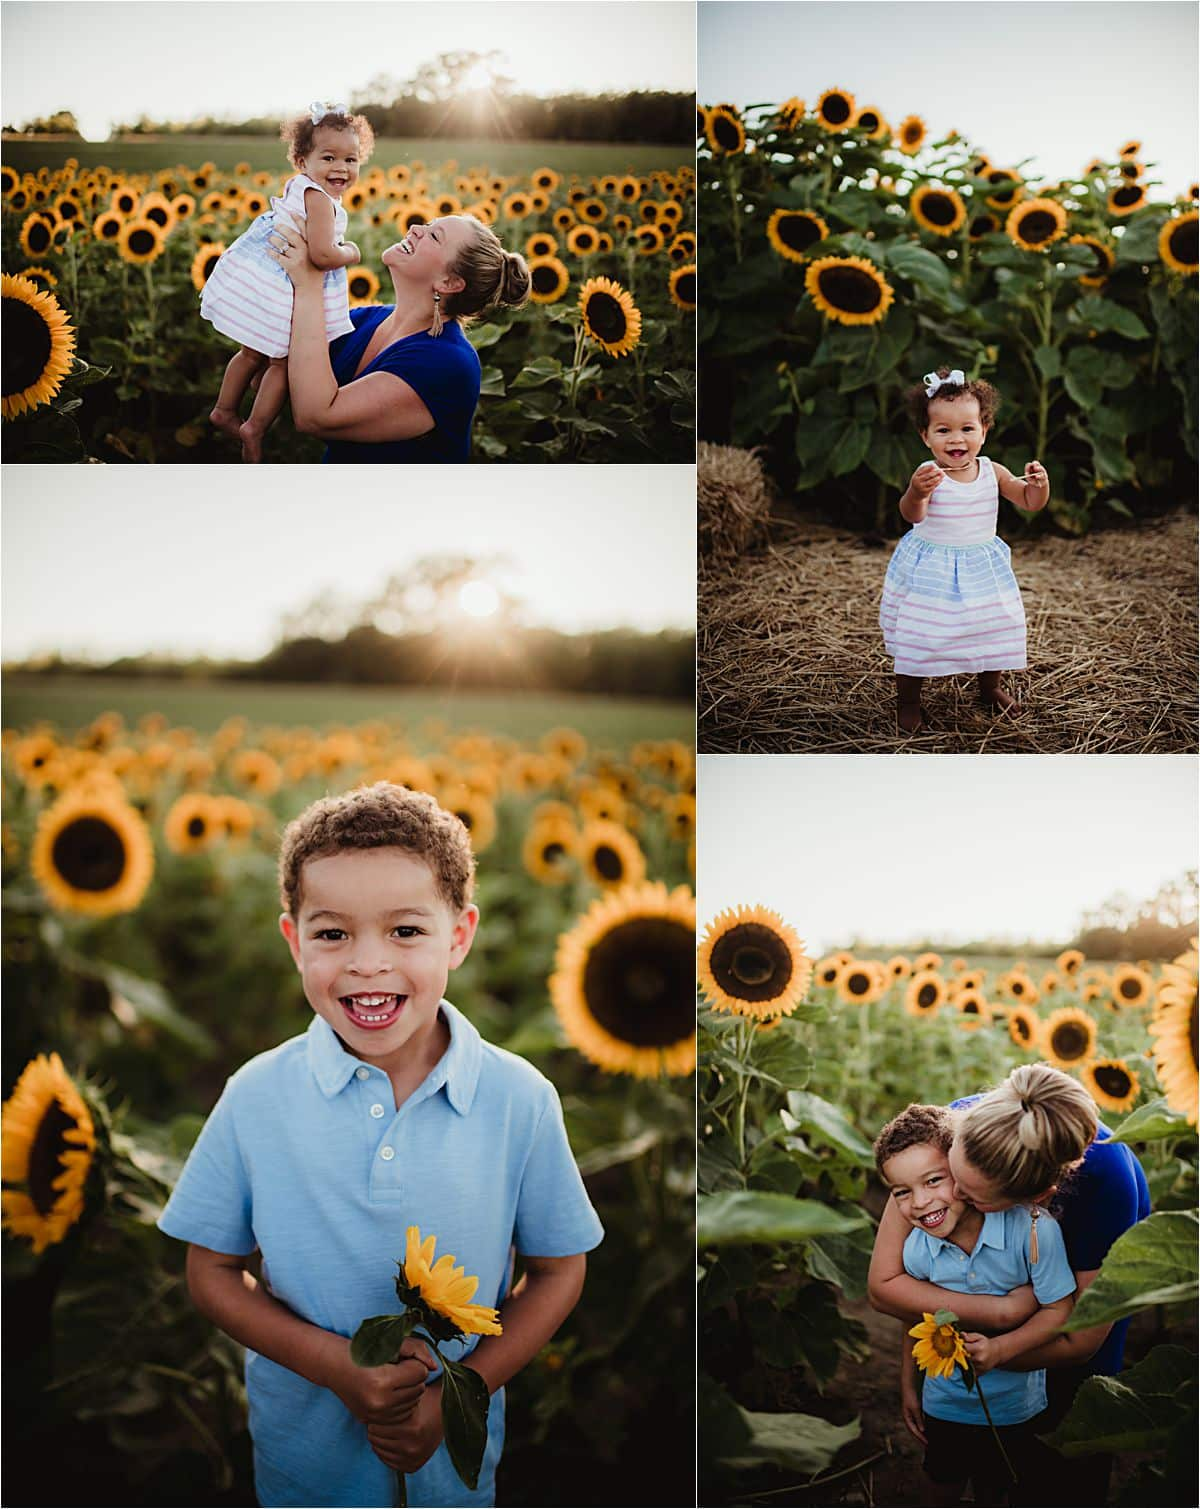 Mama and Kids Session in Sunflowers